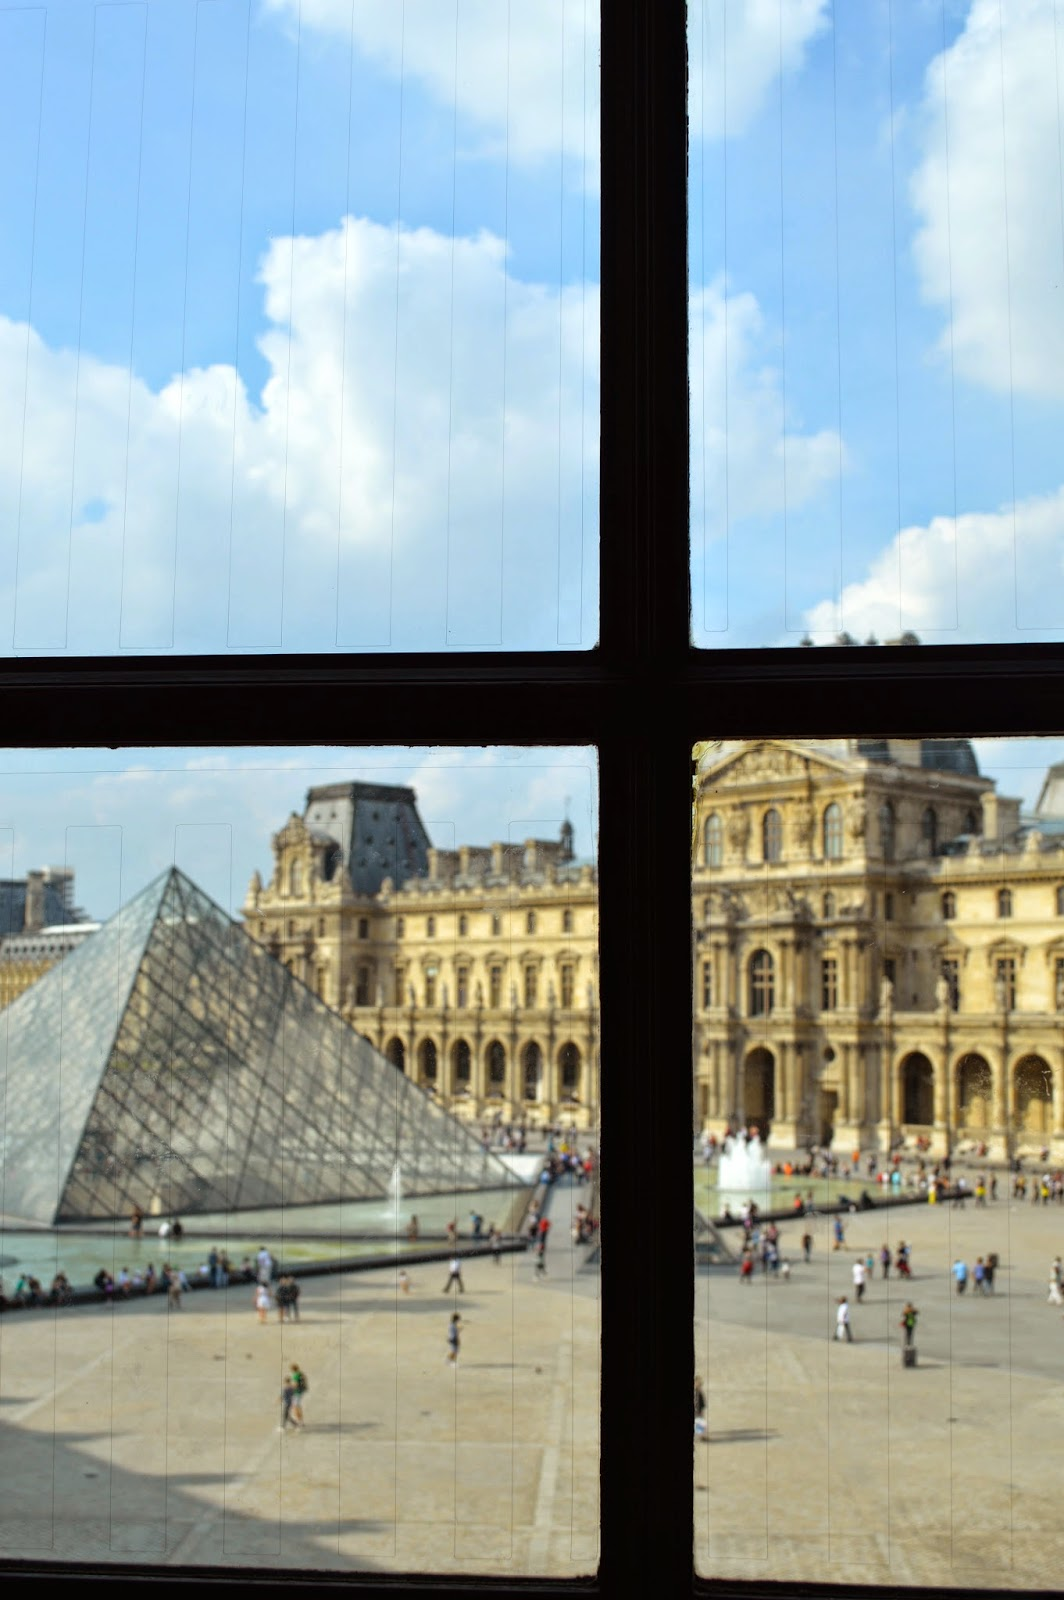 View from window inside the Louvre